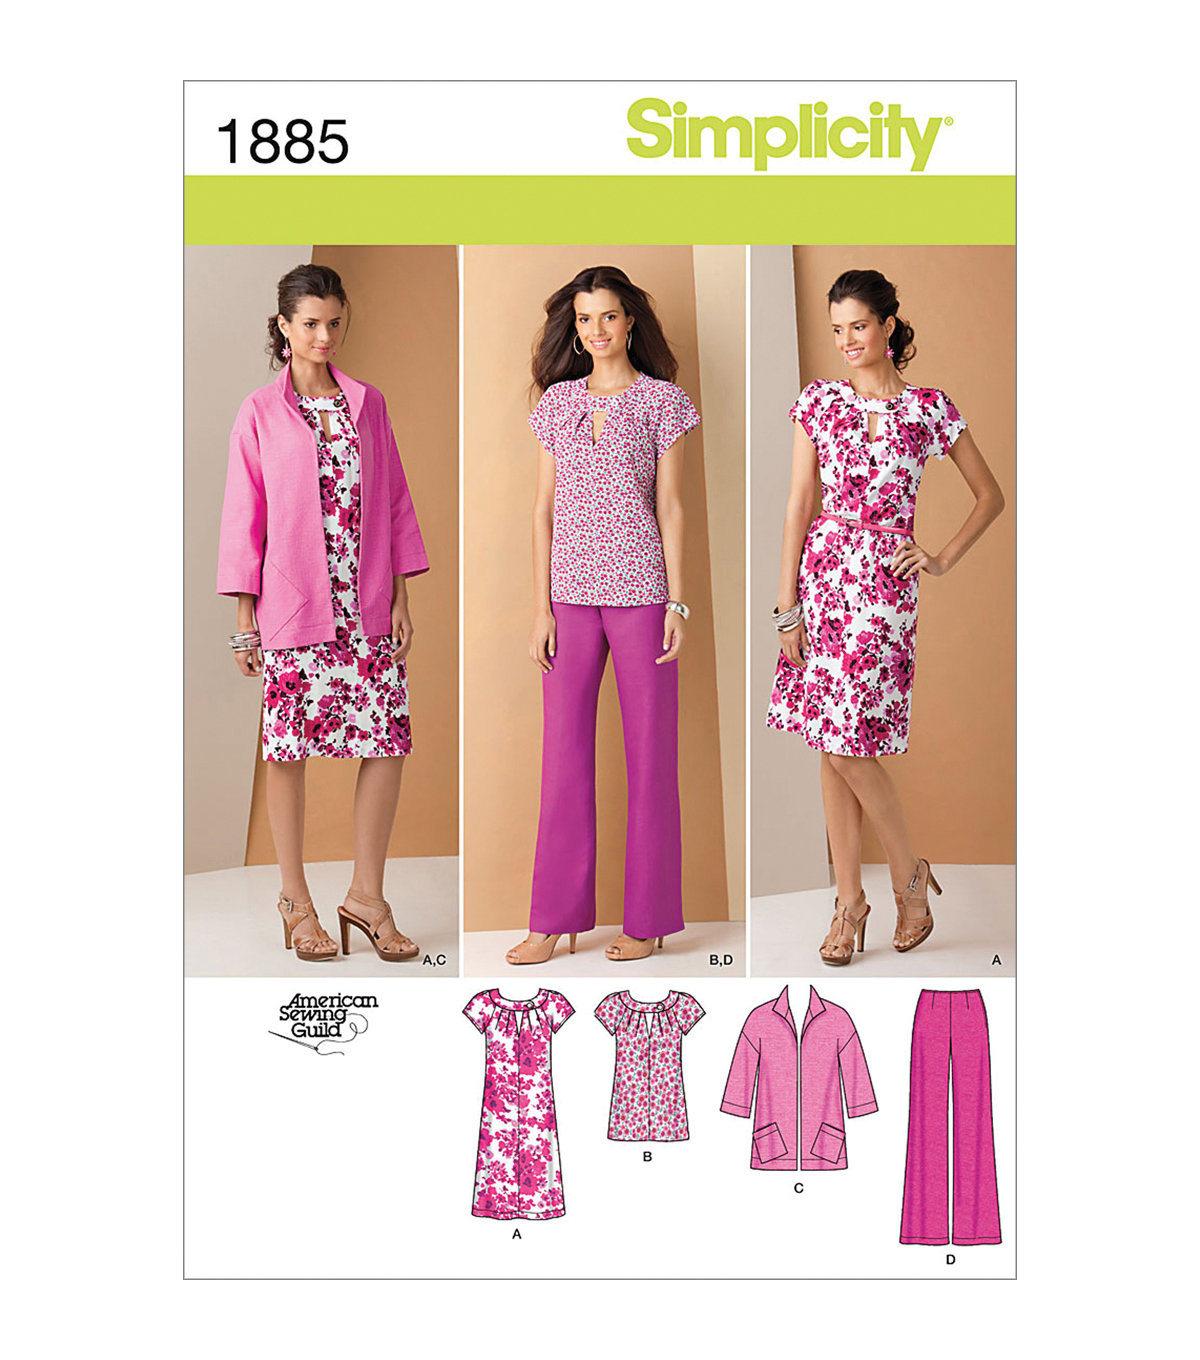 Simplicity Patterns Us1885Aa-Simplicity Misses Sportswear-10-12-14-16-18